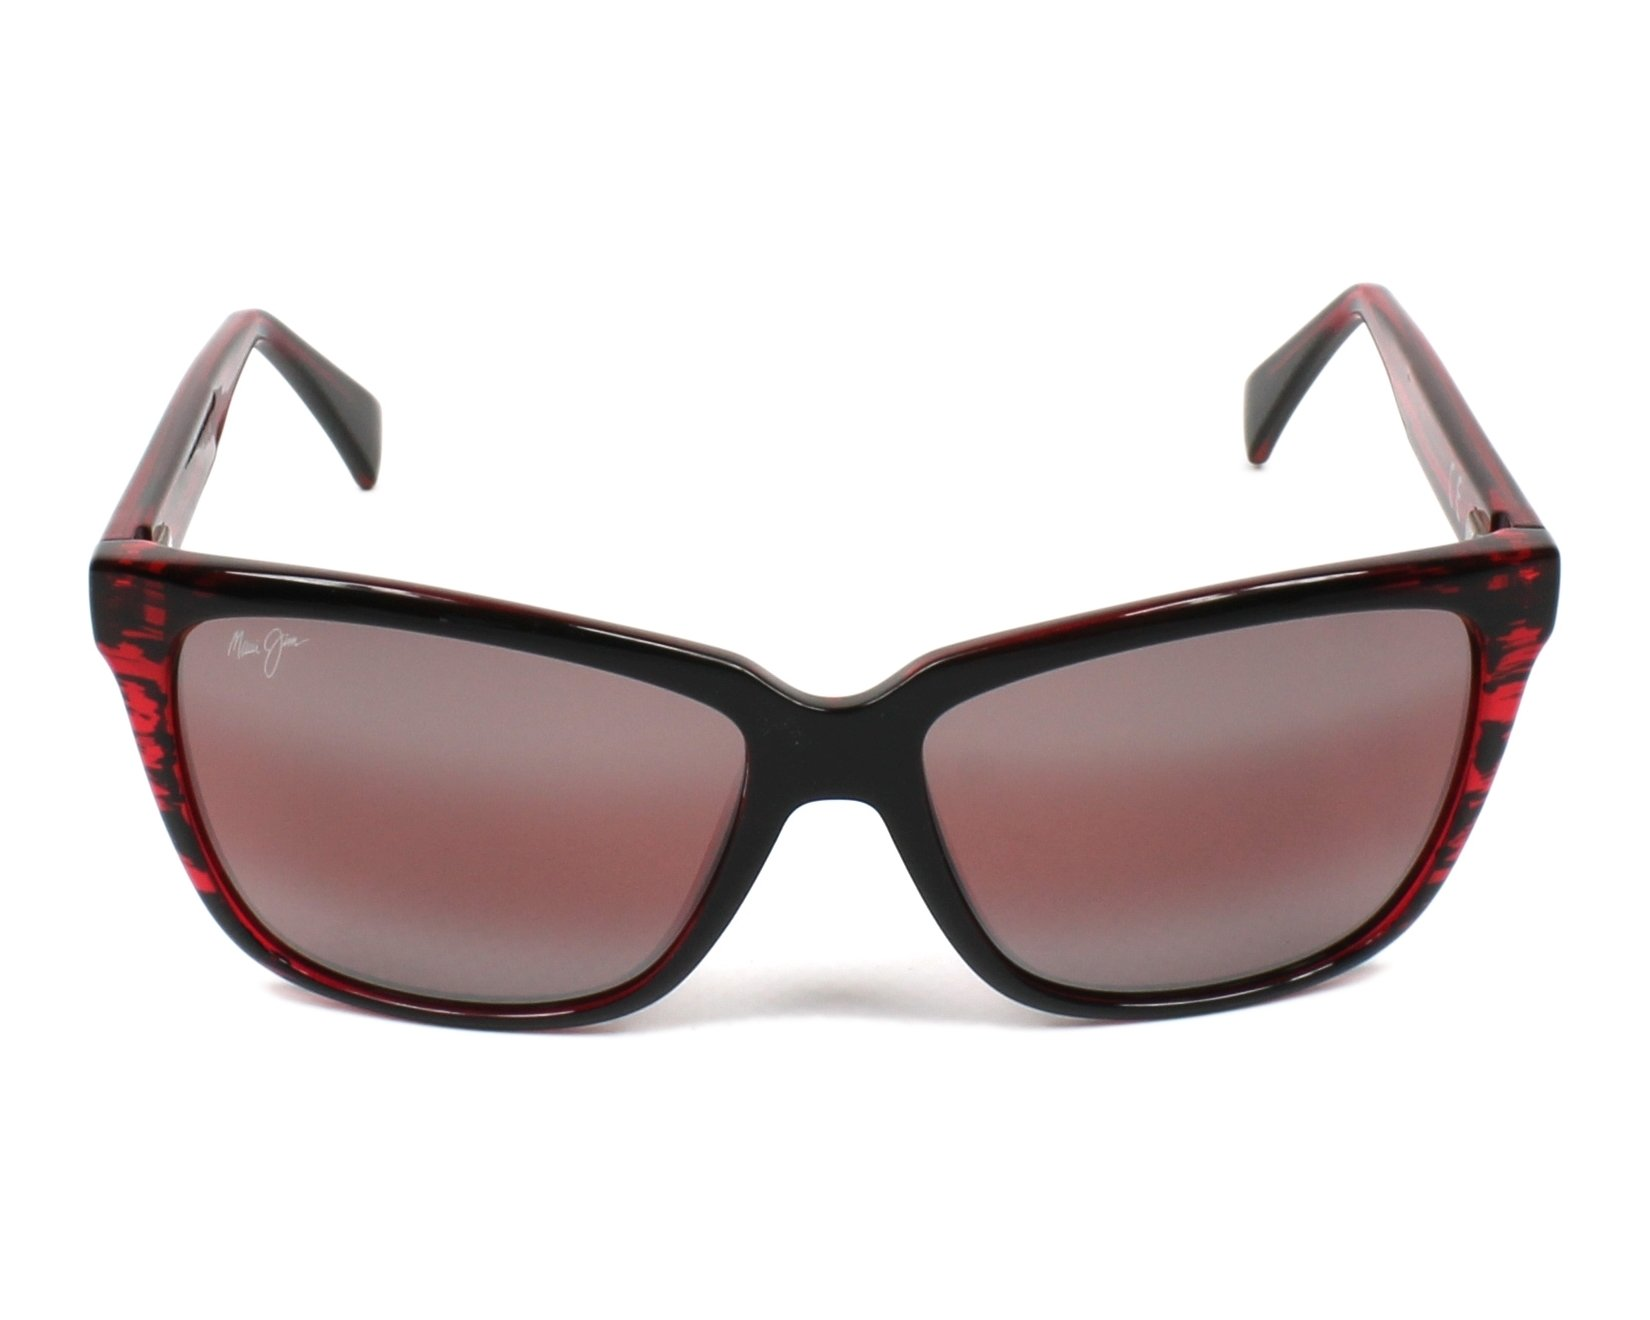 bcd283a63d Sunglasses Maui Jim R-763 07C 56-16 Red Red front view